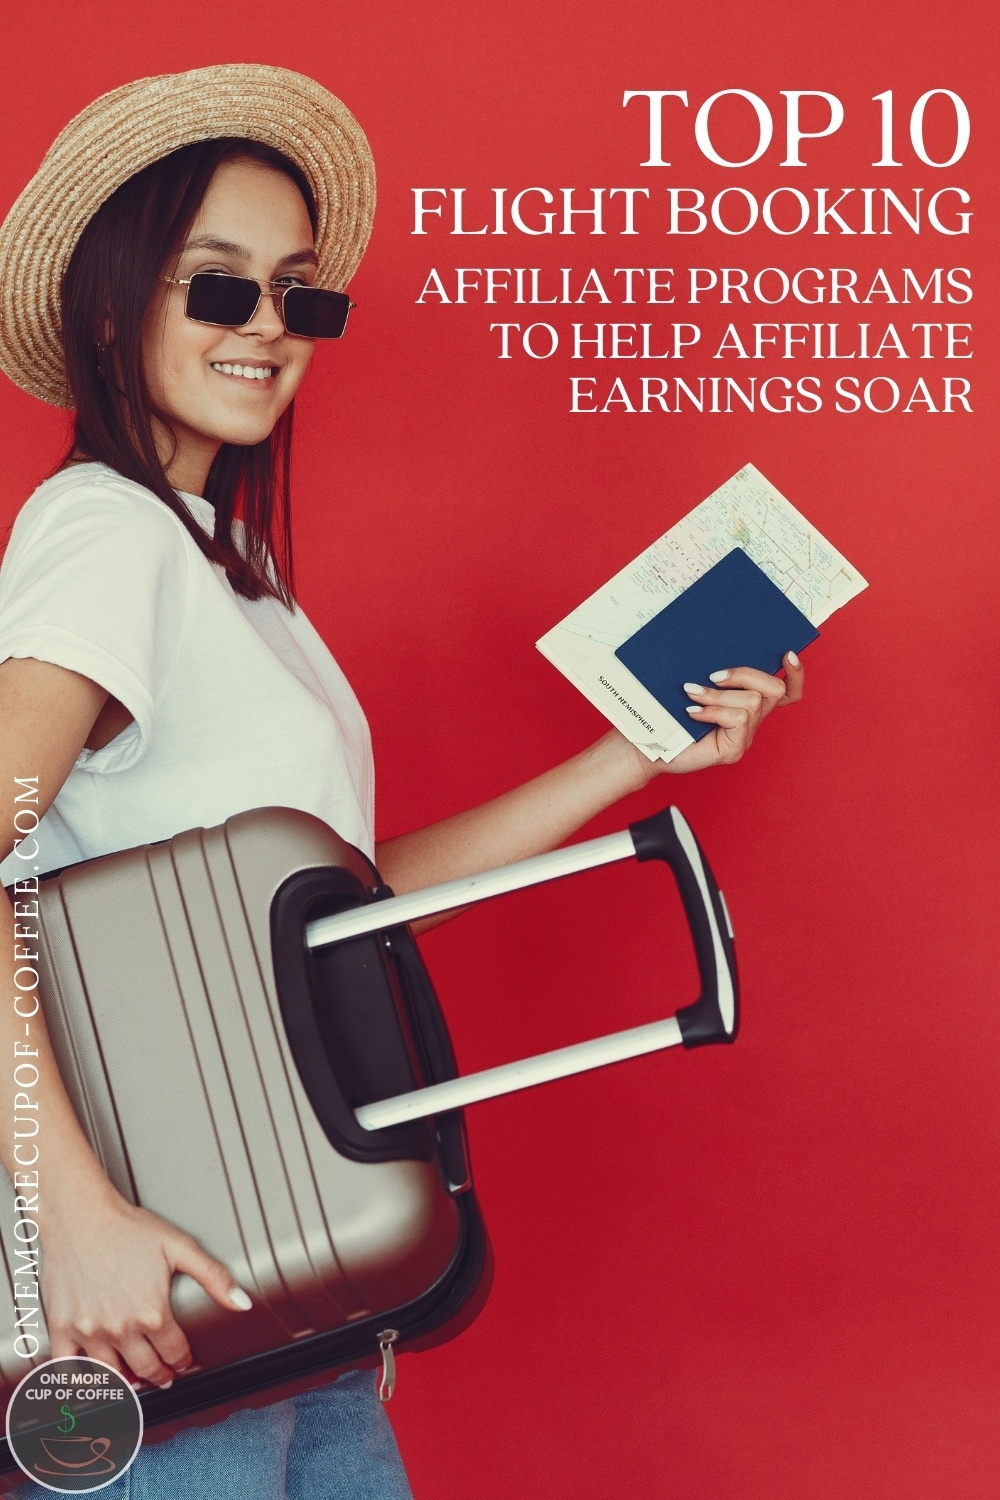 """on a red background is a smiling woman in dark sunglasses and straw hat, wearing a white t-shirt and jeans, carrying a luggage in one hand and her passport with the other; with text overlay """"Top 10 Flight Booking Affiliate Programs To Help Affiliate Earnings Soar"""""""